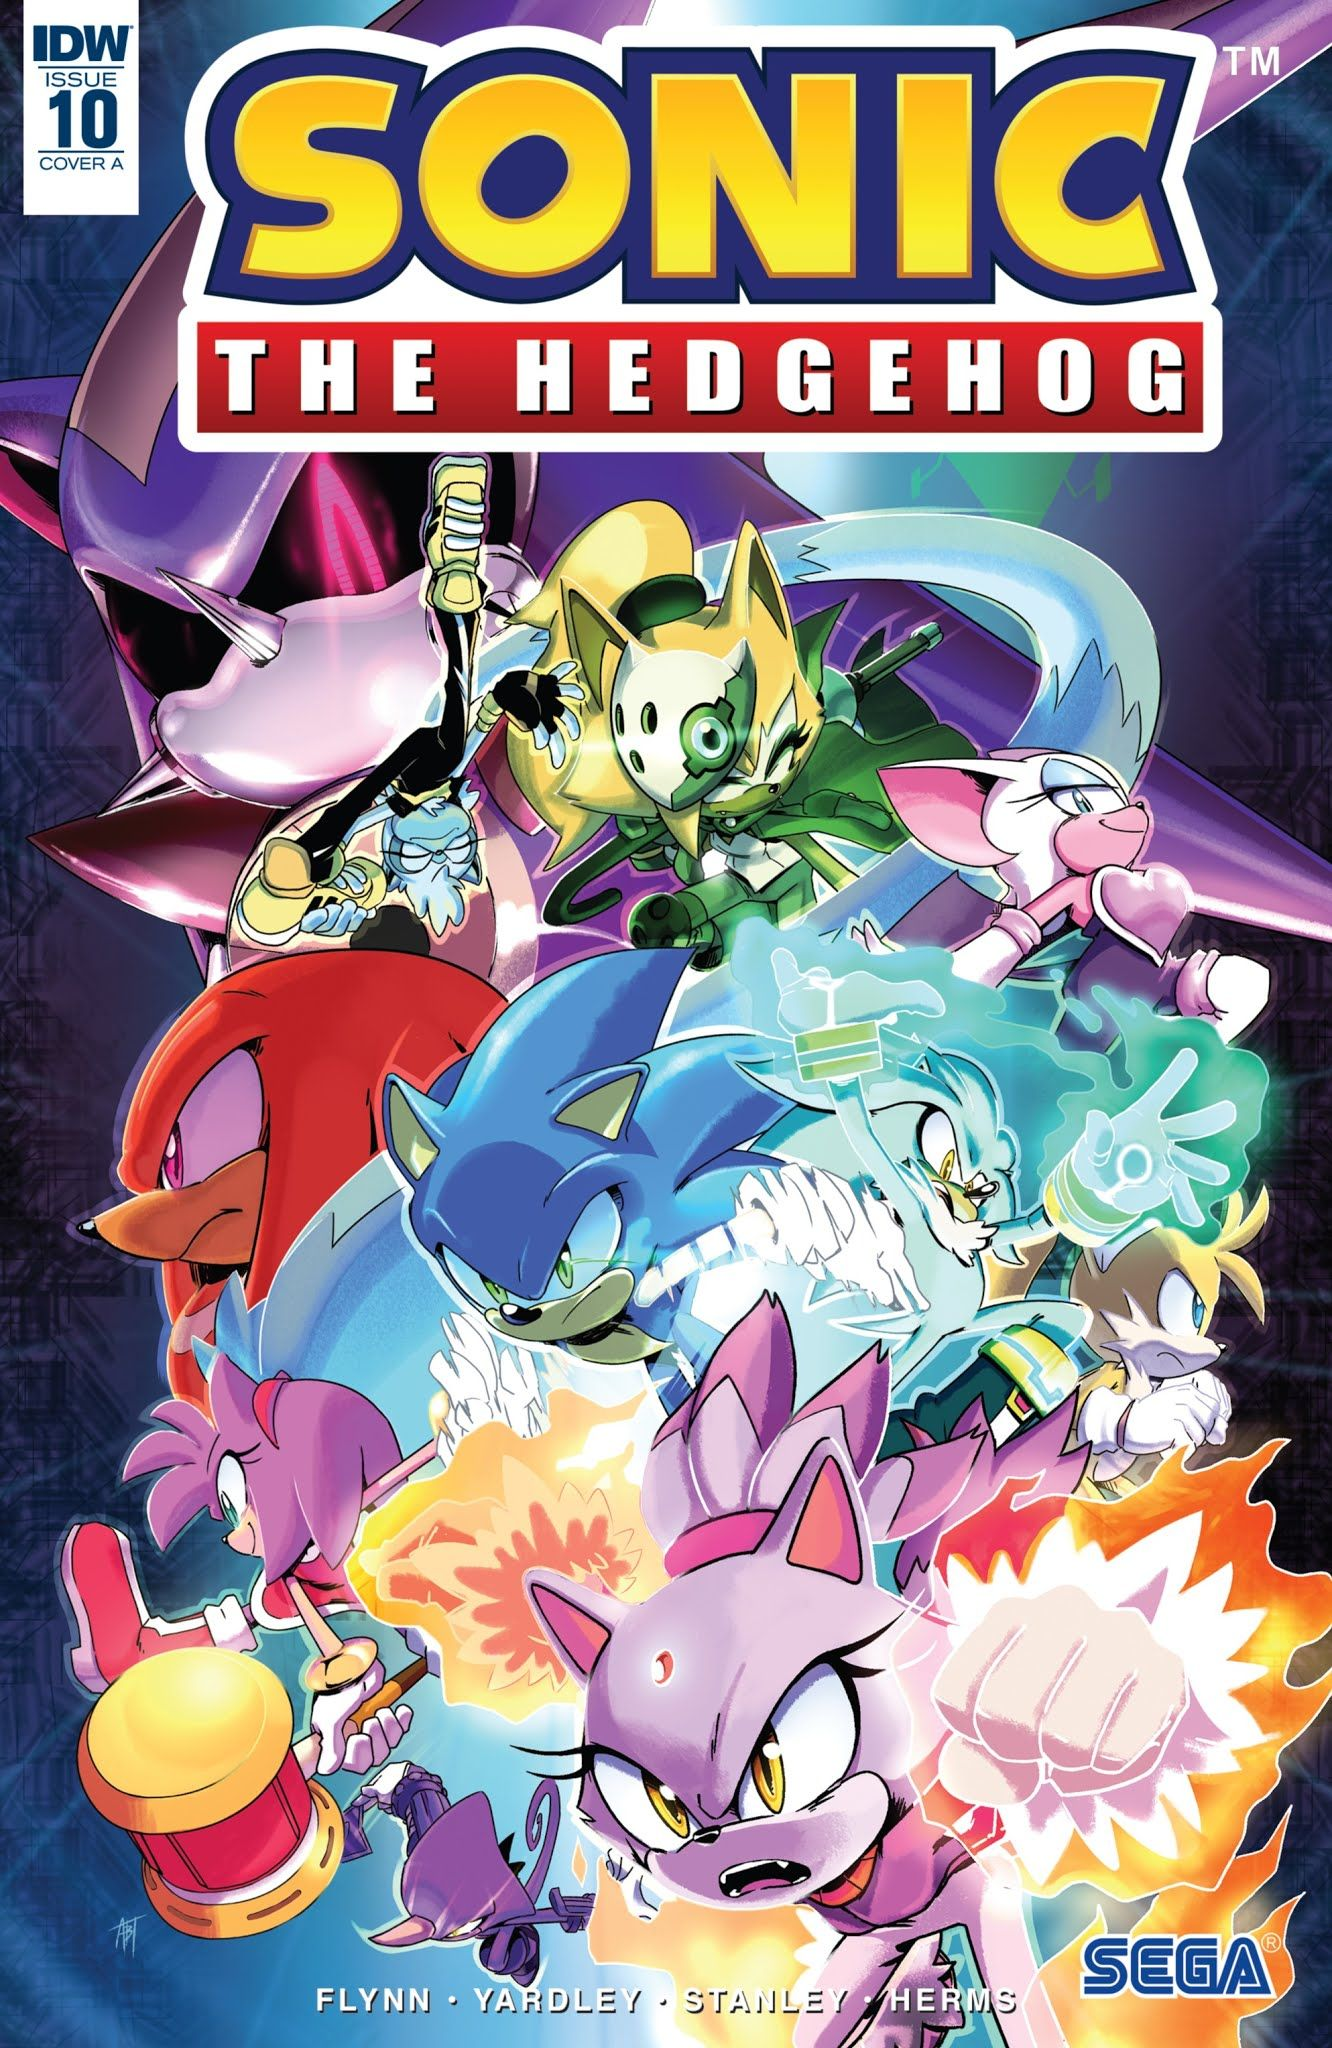 Sonic The Hedgehog 2018 Issue 10 Read Sonic The Hedgehog 2018 Issue 10 Comic Online In High Quality Sonic Adventure Sonic Sonic The Hedgehog